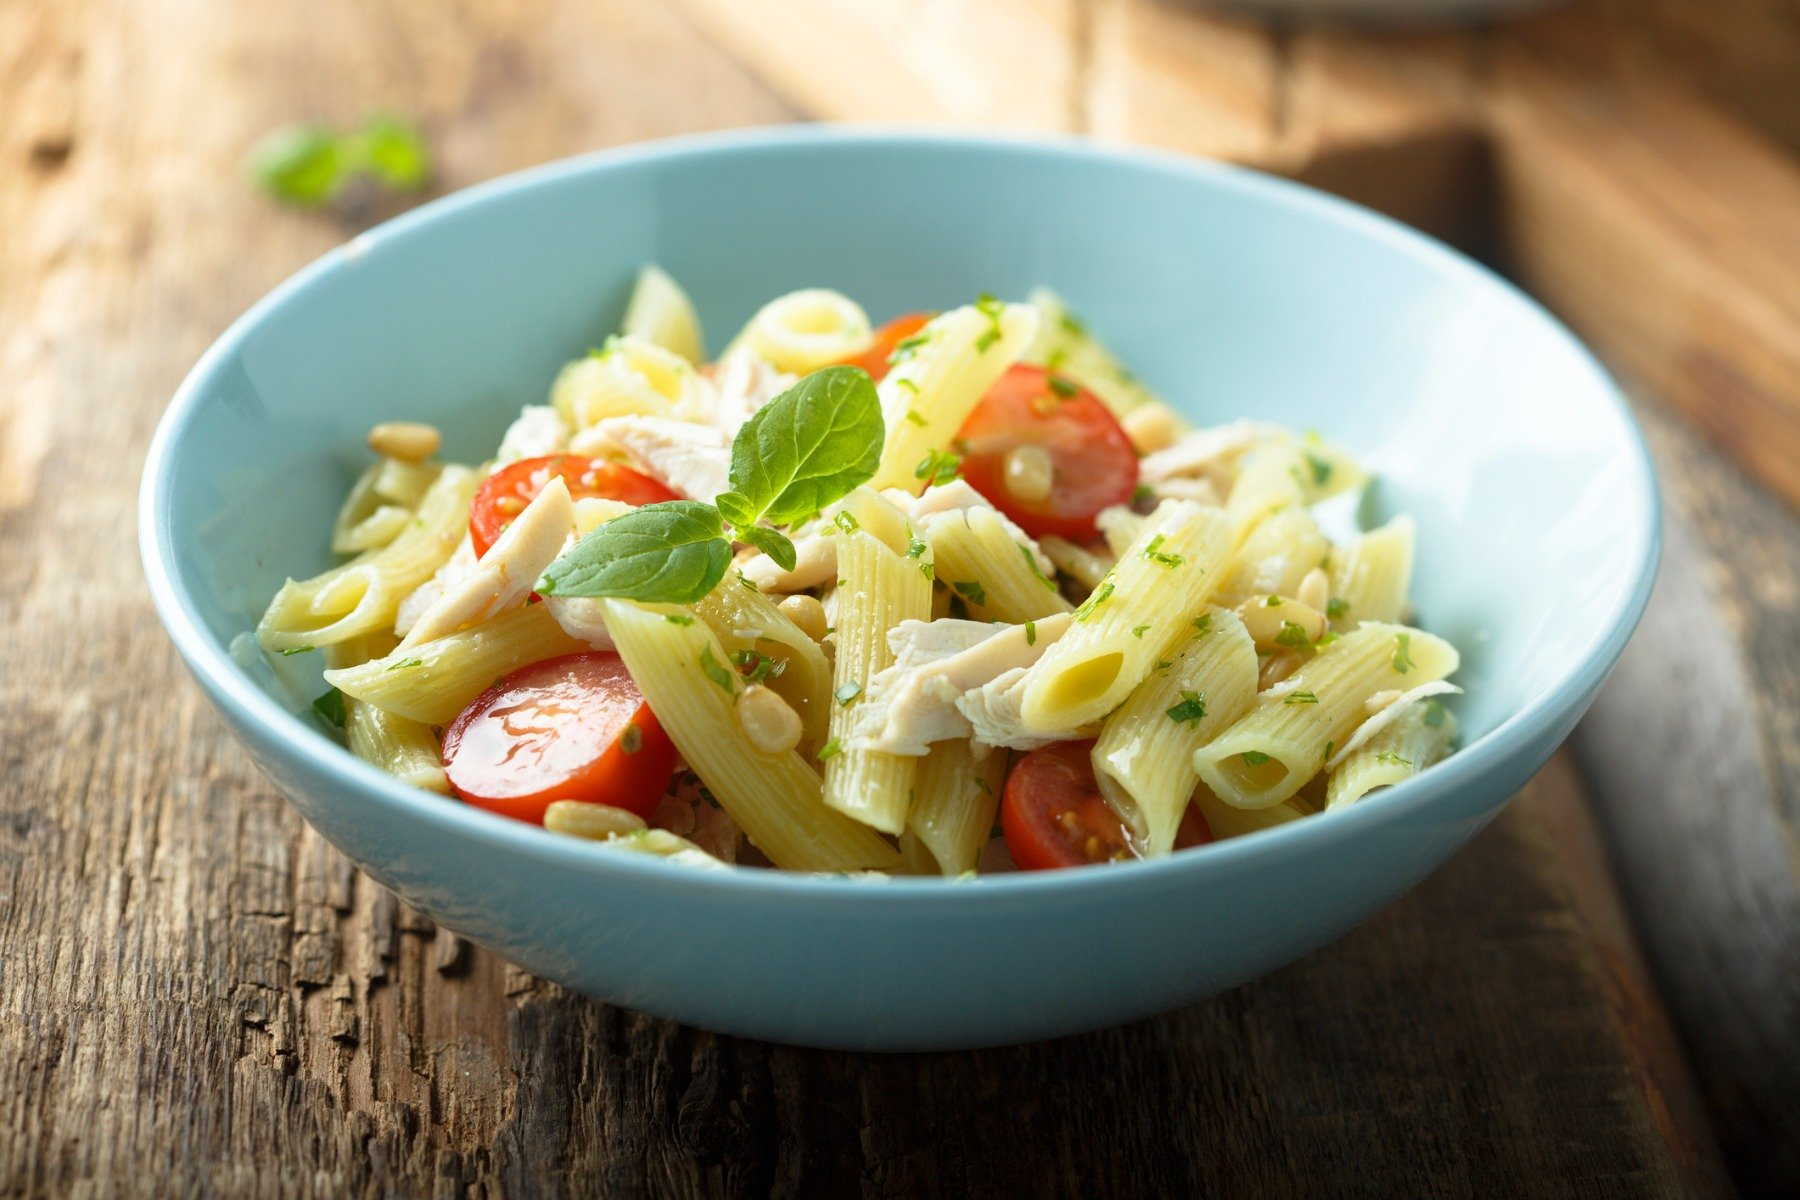 Light pasta salad